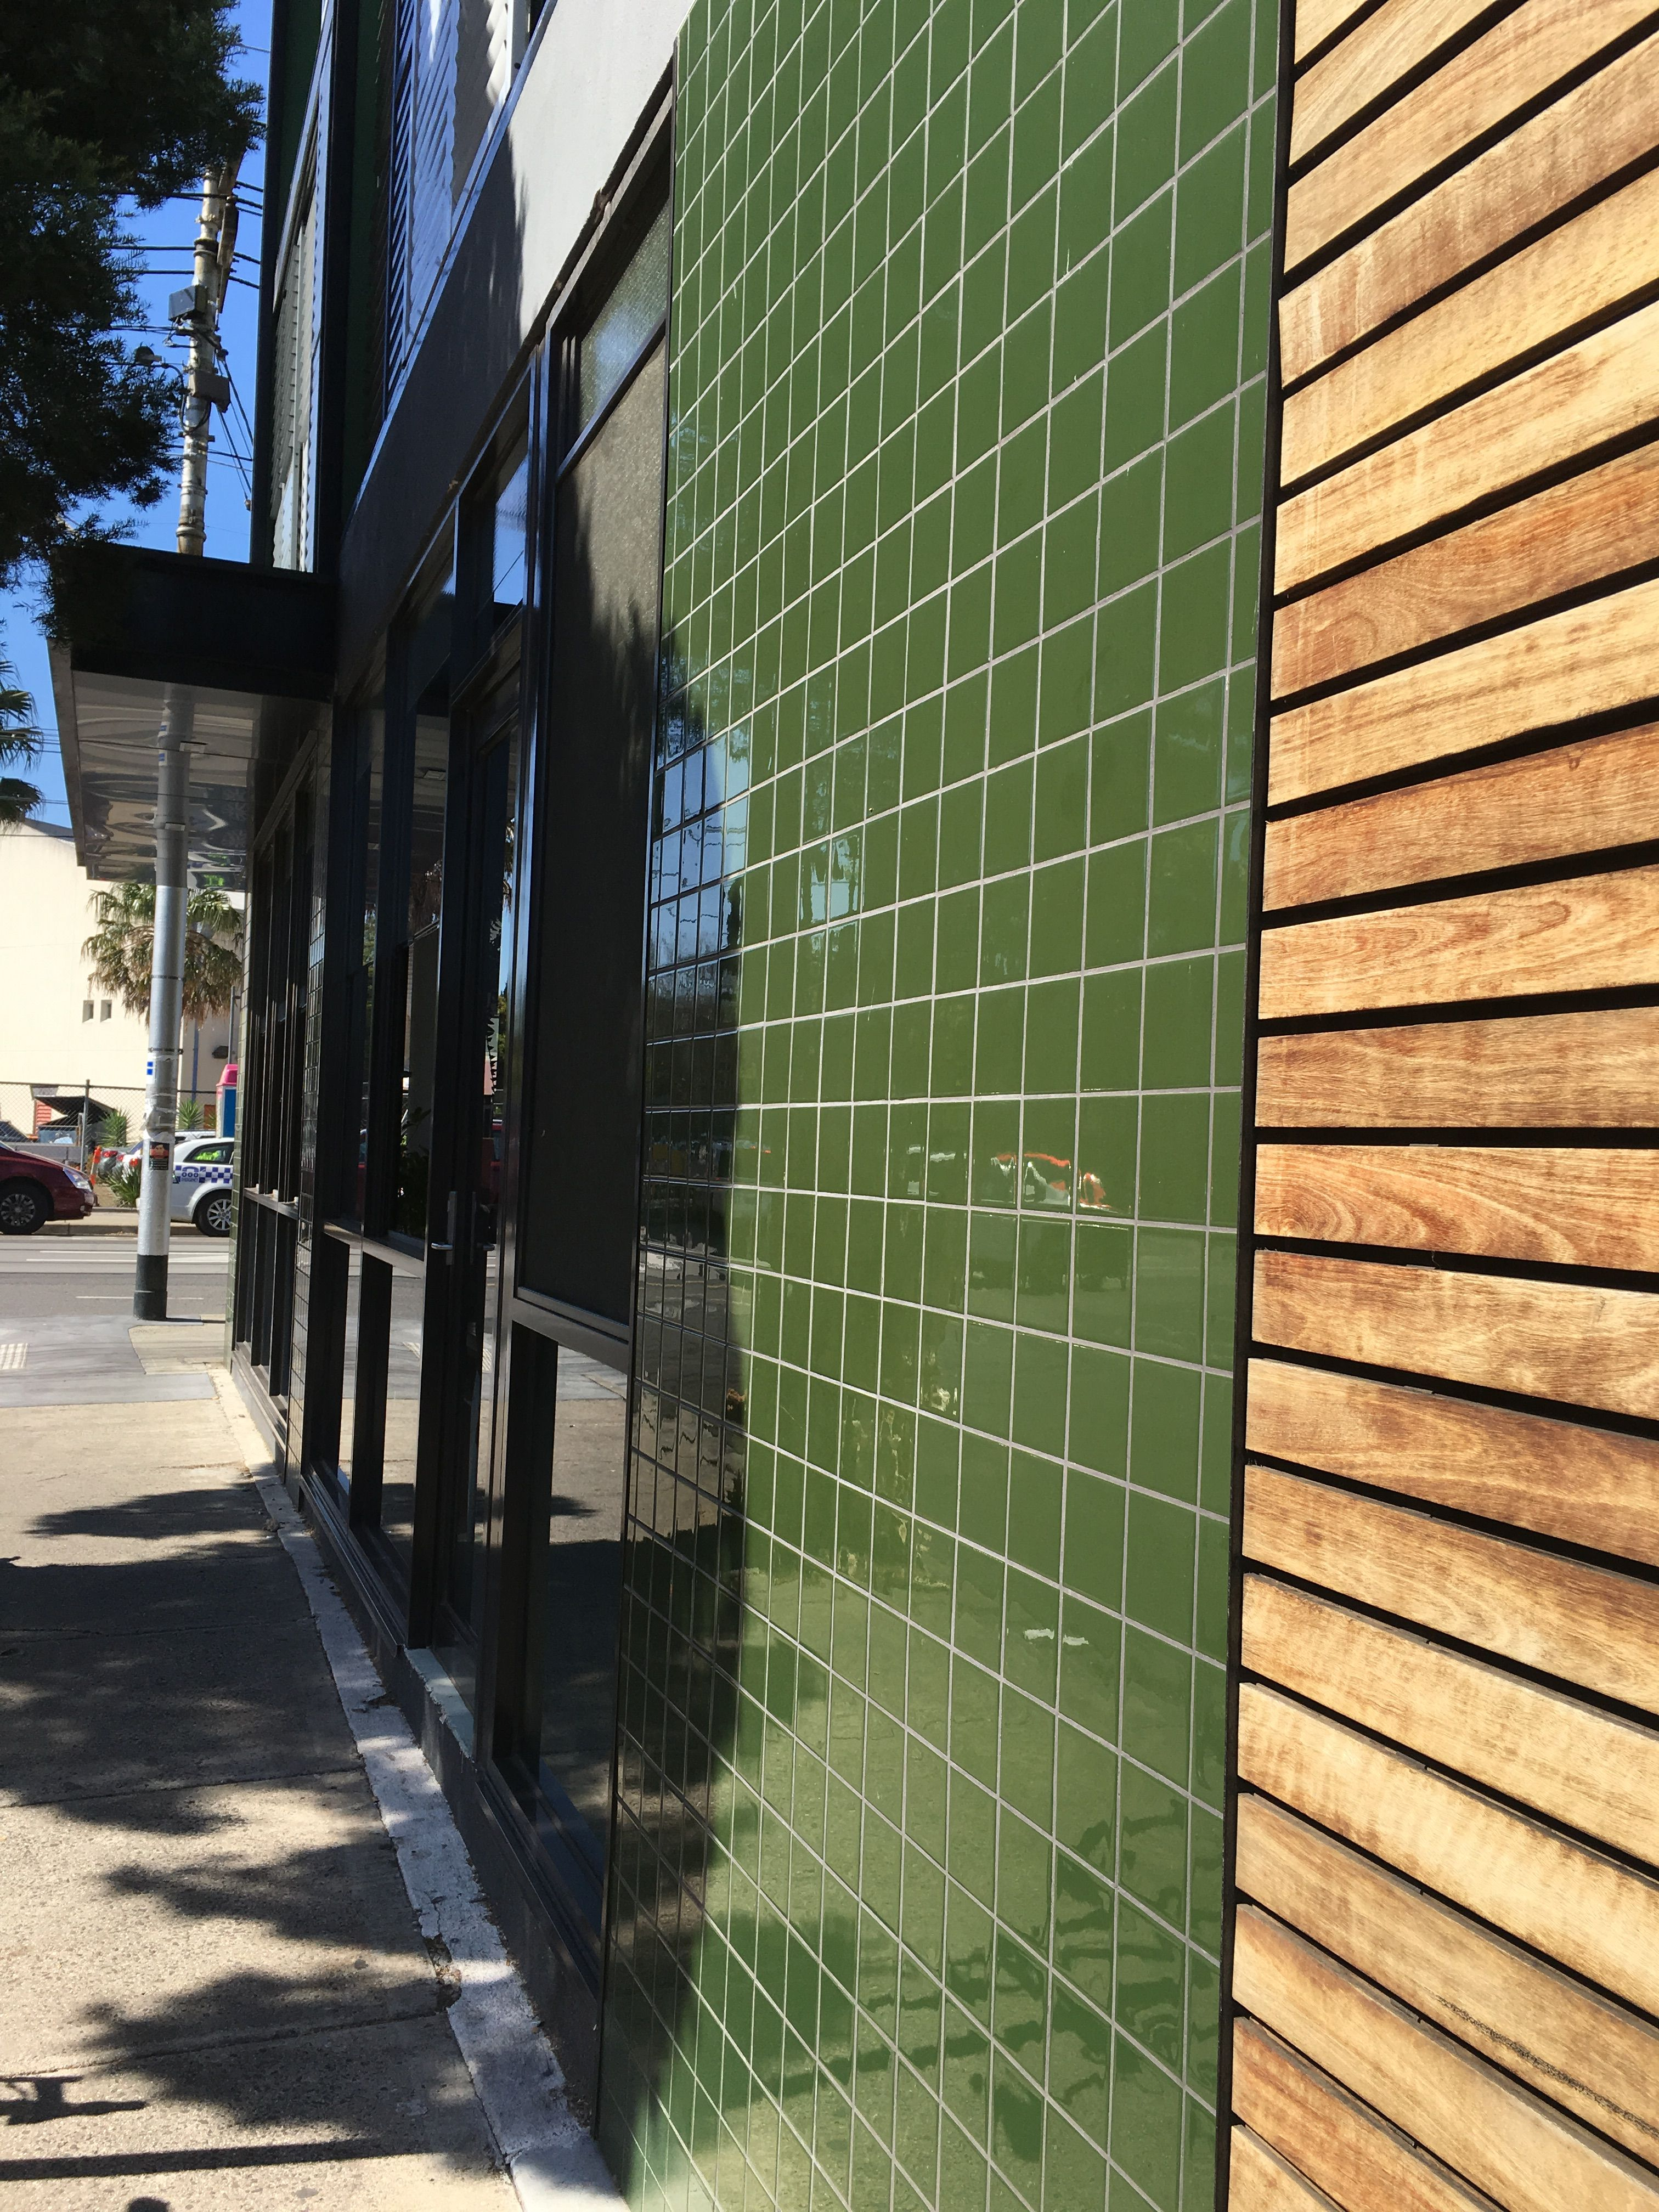 PHOTO 5: The green tiles outside this Melbourne coffee shop contrast organically with the wood slats and add to the modern decor of the exterior space.